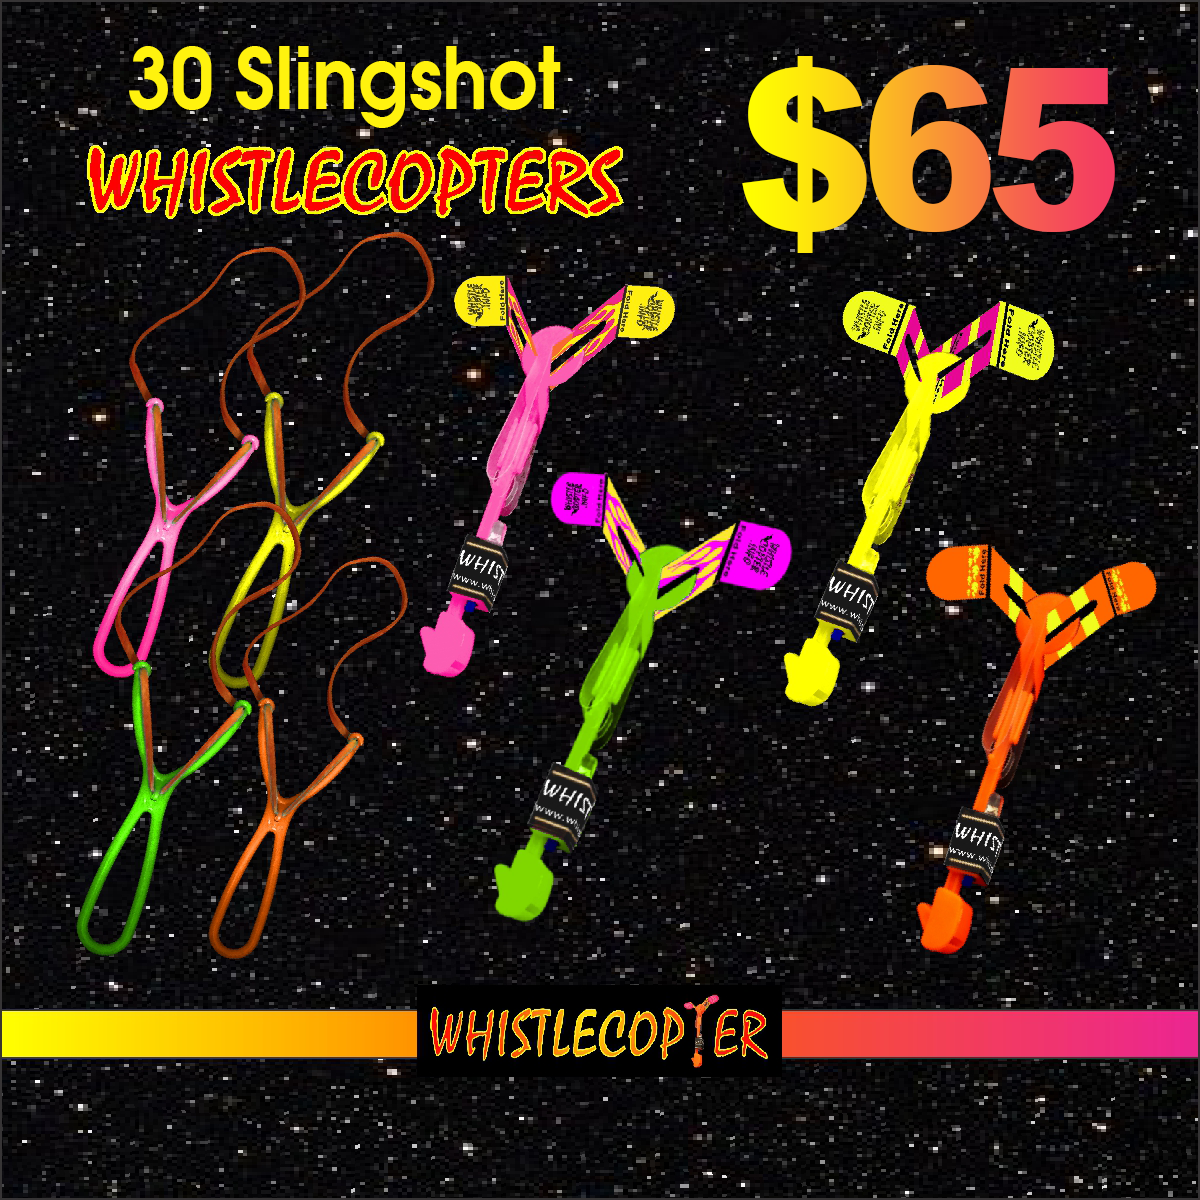 02222017  30 whistlecopter with  sling shot 65 dollars